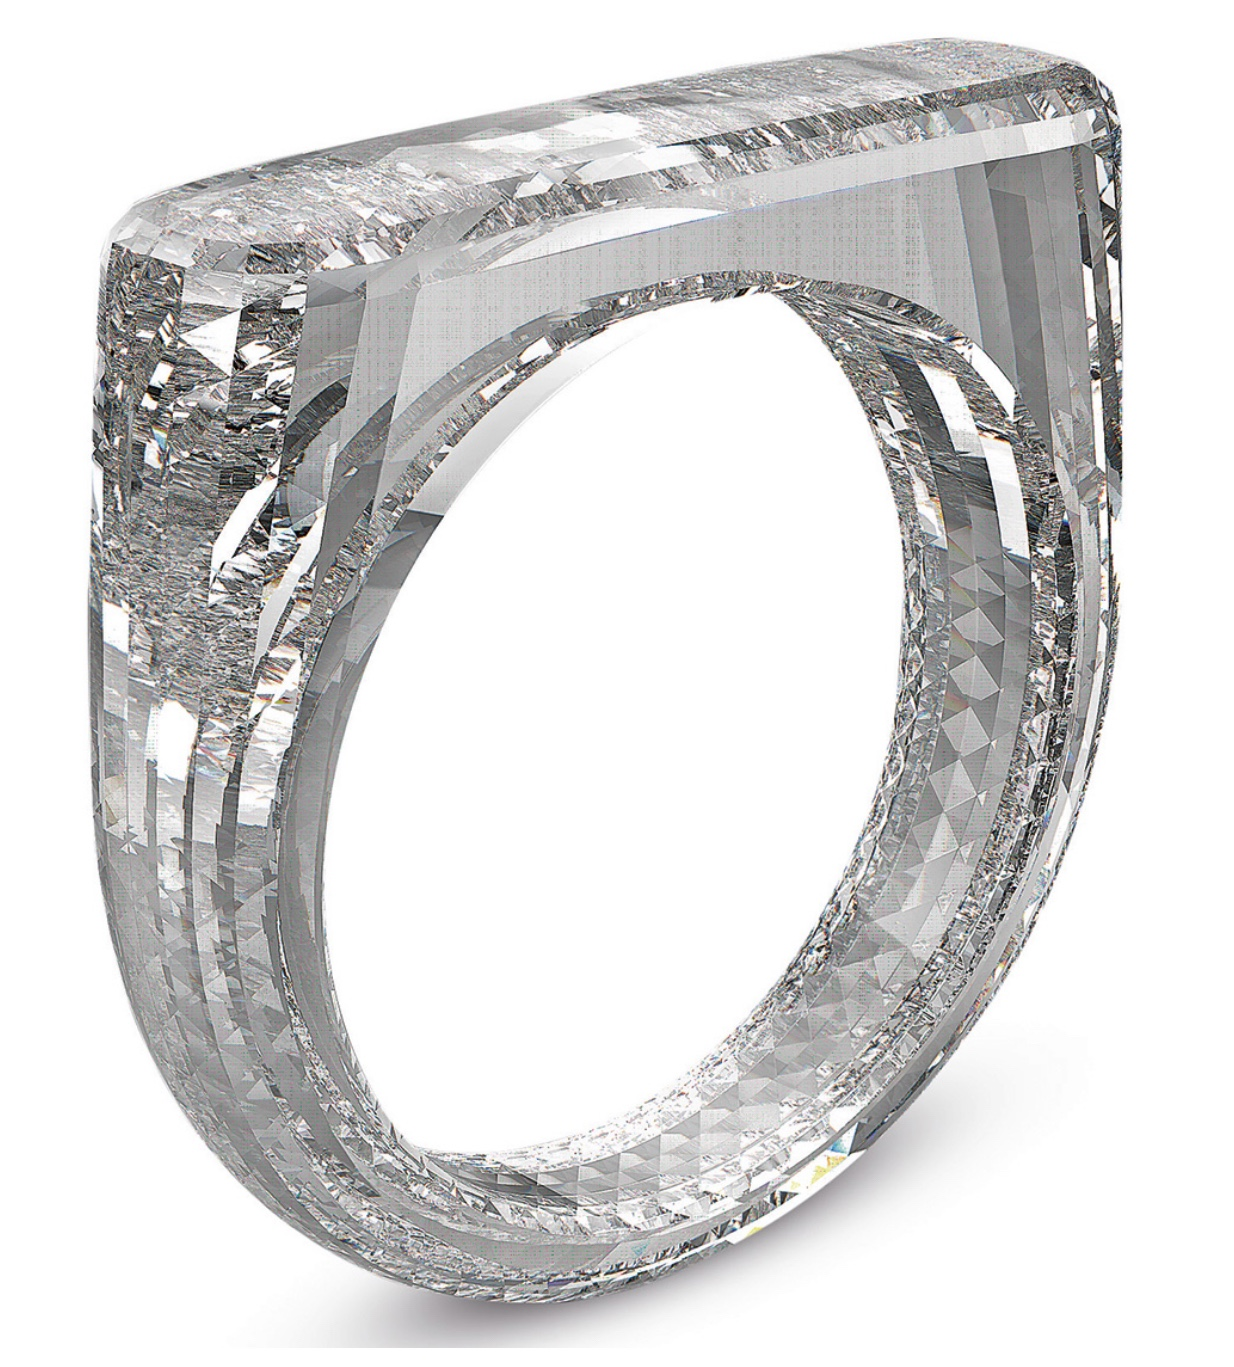 Apple's Jony Ive Creates (RED) Diamond Ring Worth Up to $250,000 USD for Charity